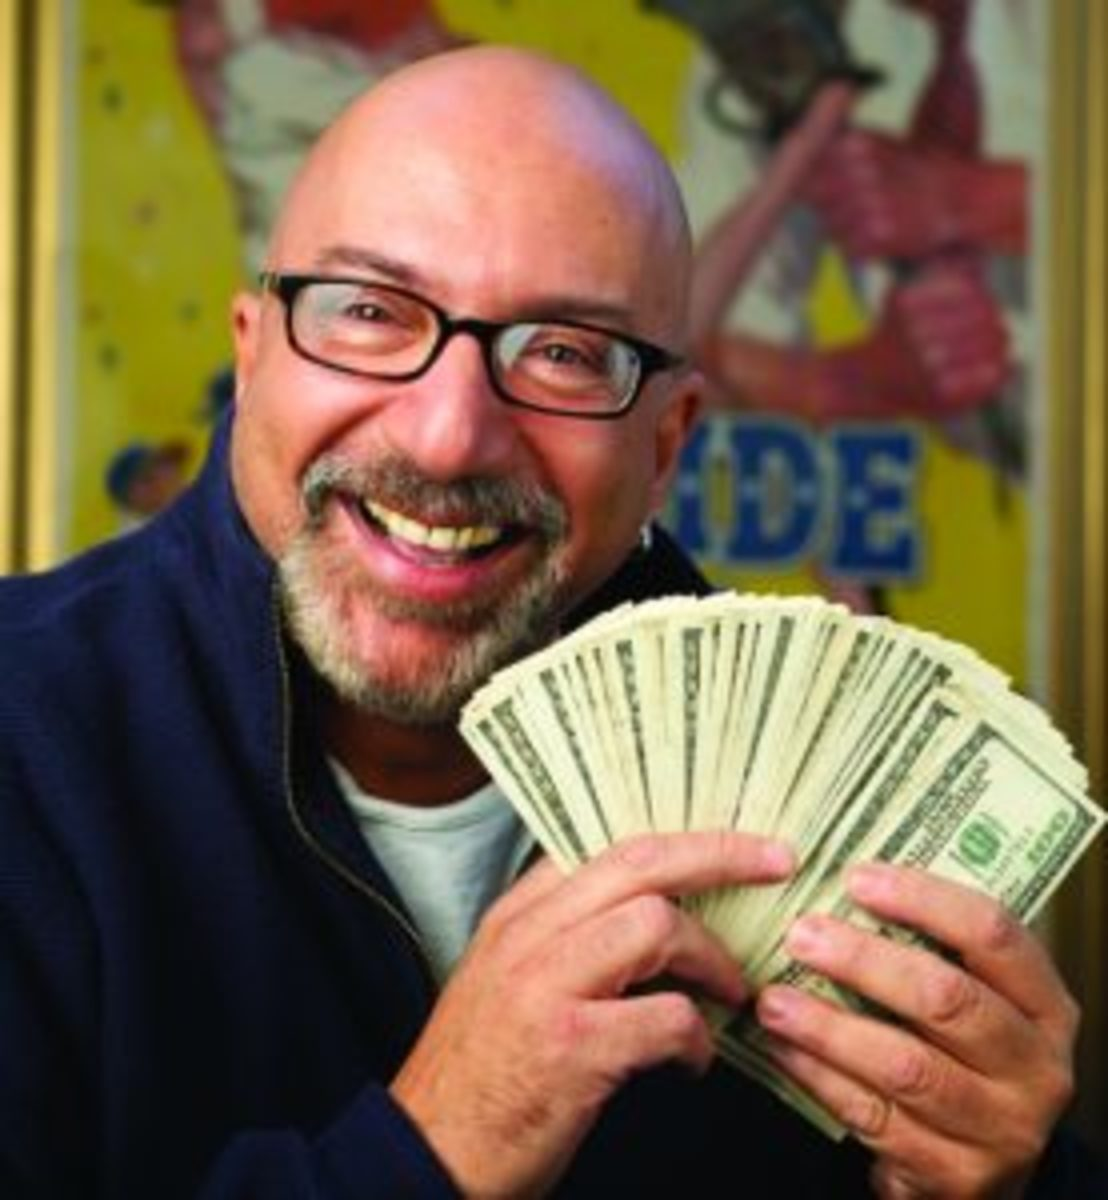 """Alan """"Mr. Mint"""" Rosen was a fixture at sports collectibles shows across the country buying memorabilia with $100 bills. (SCD File Photos)"""